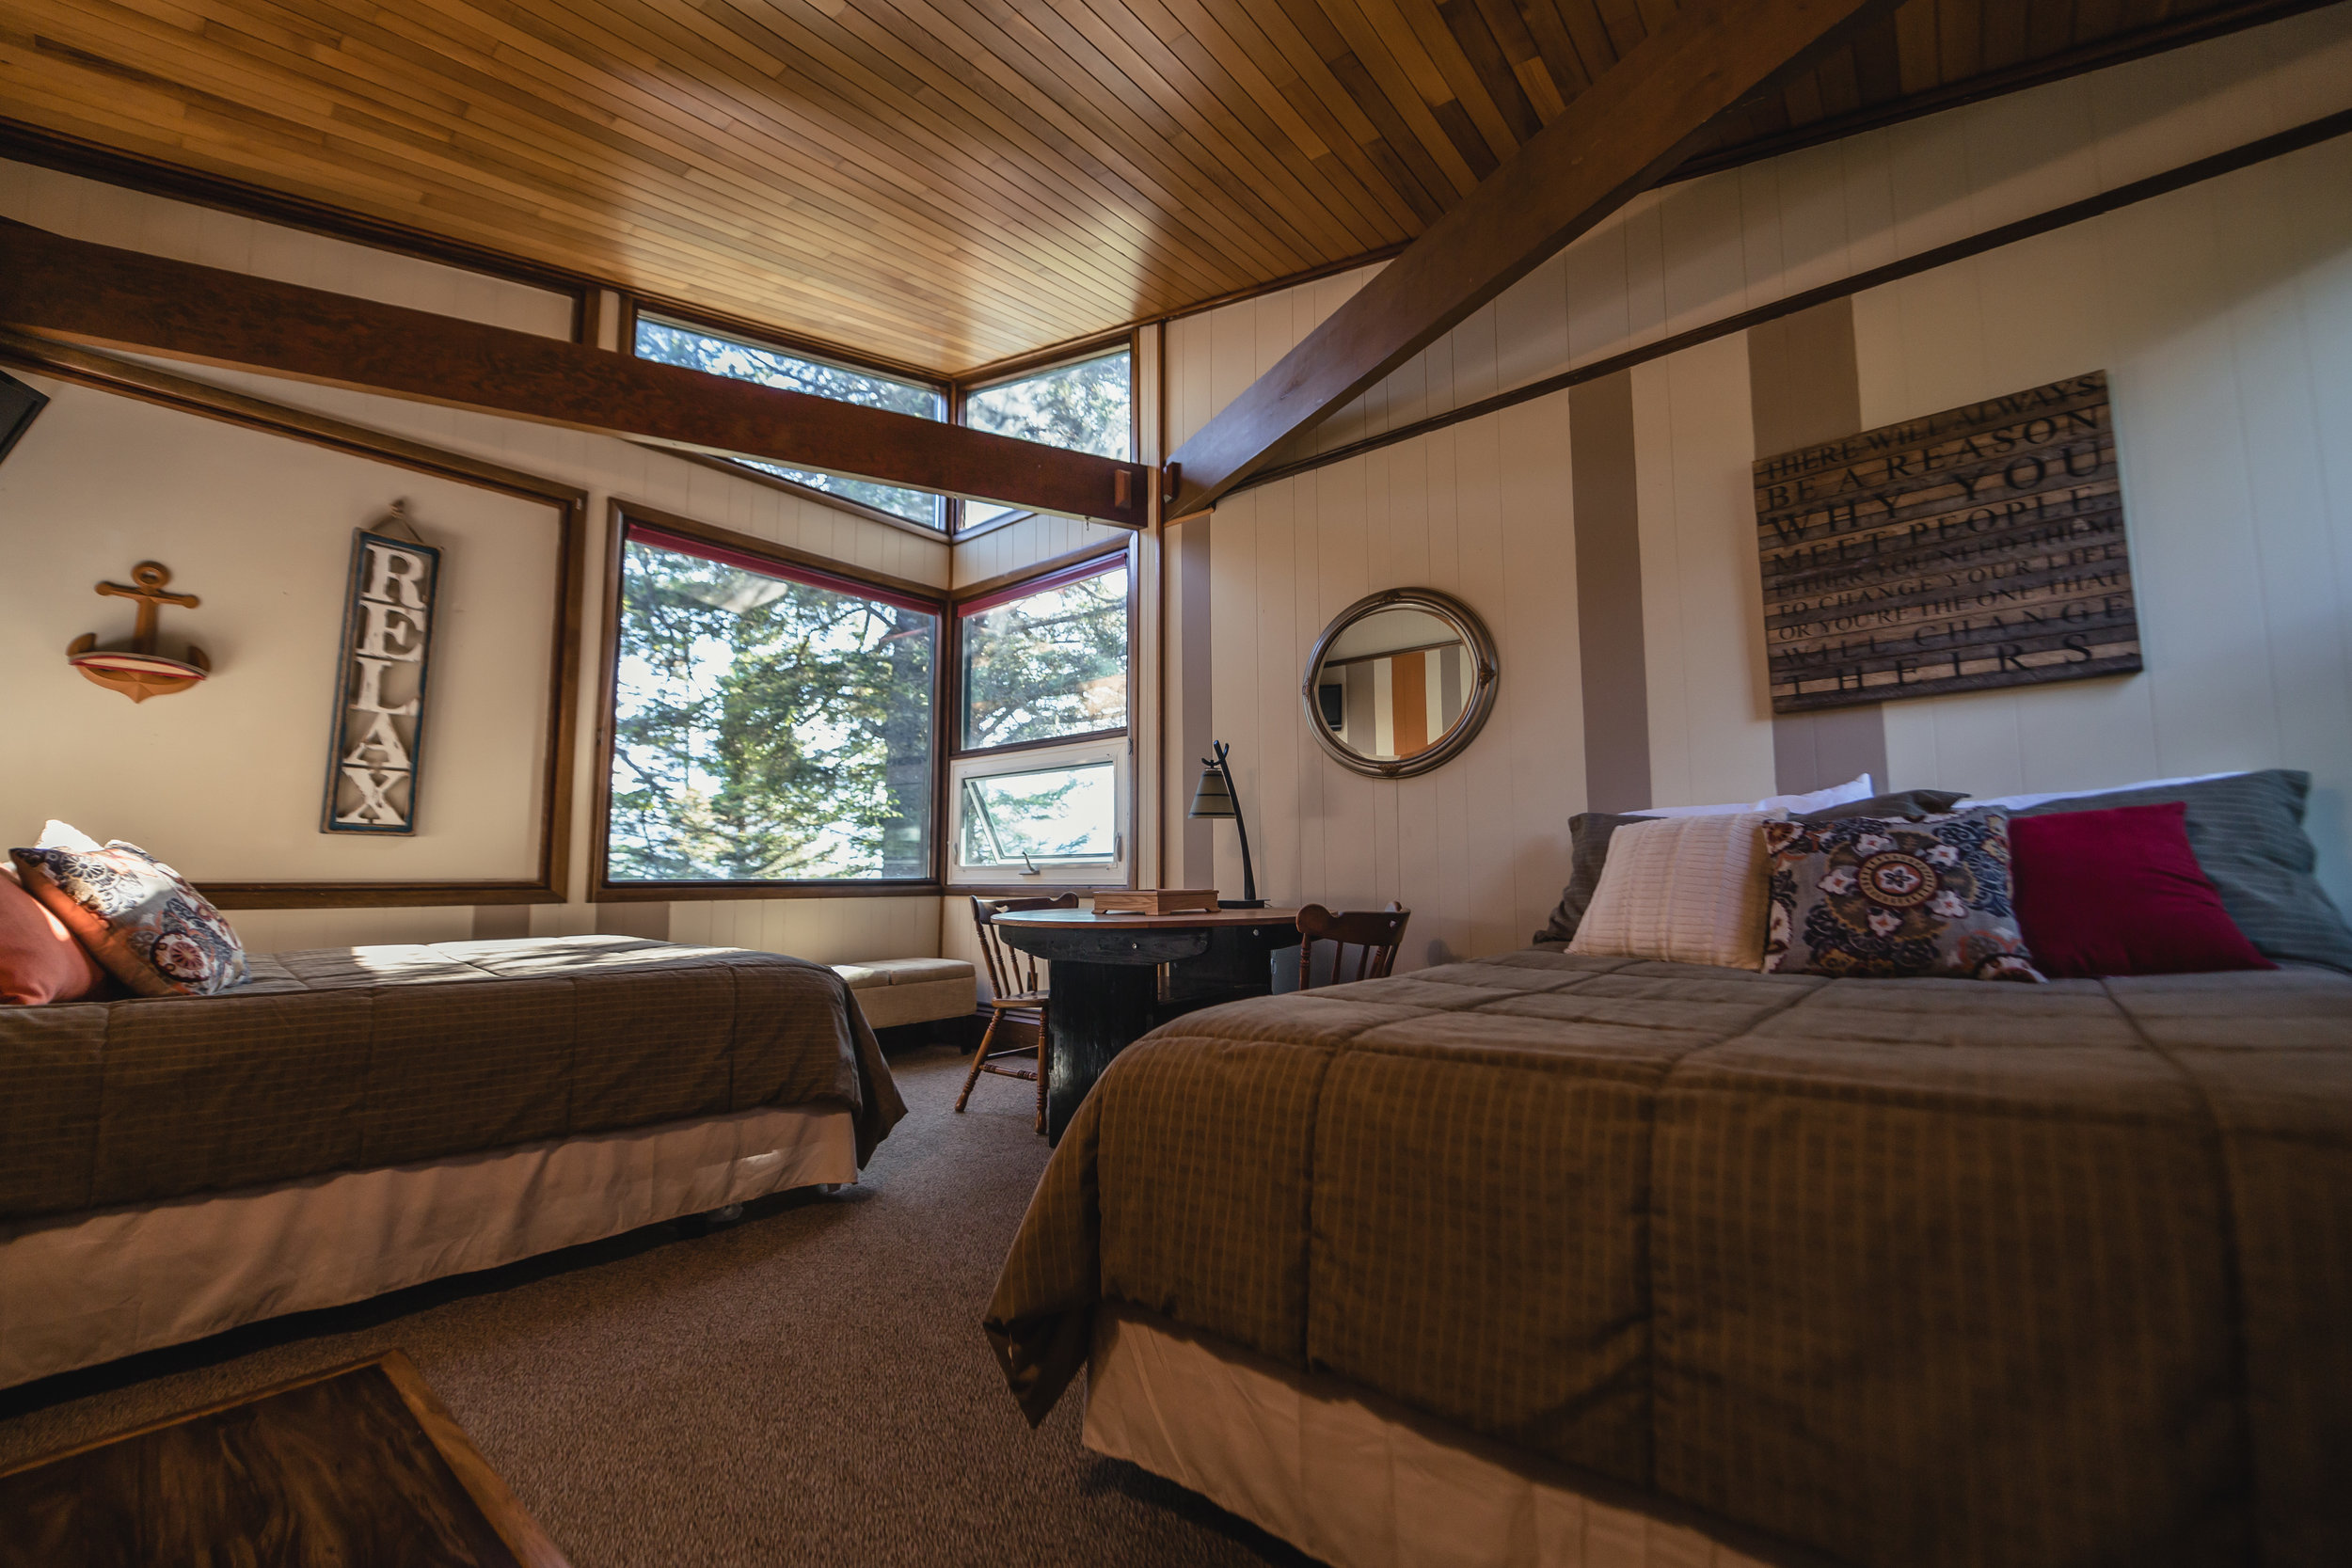 2019-06-06_The_Timber_House_Photo (3 of 37).jpg